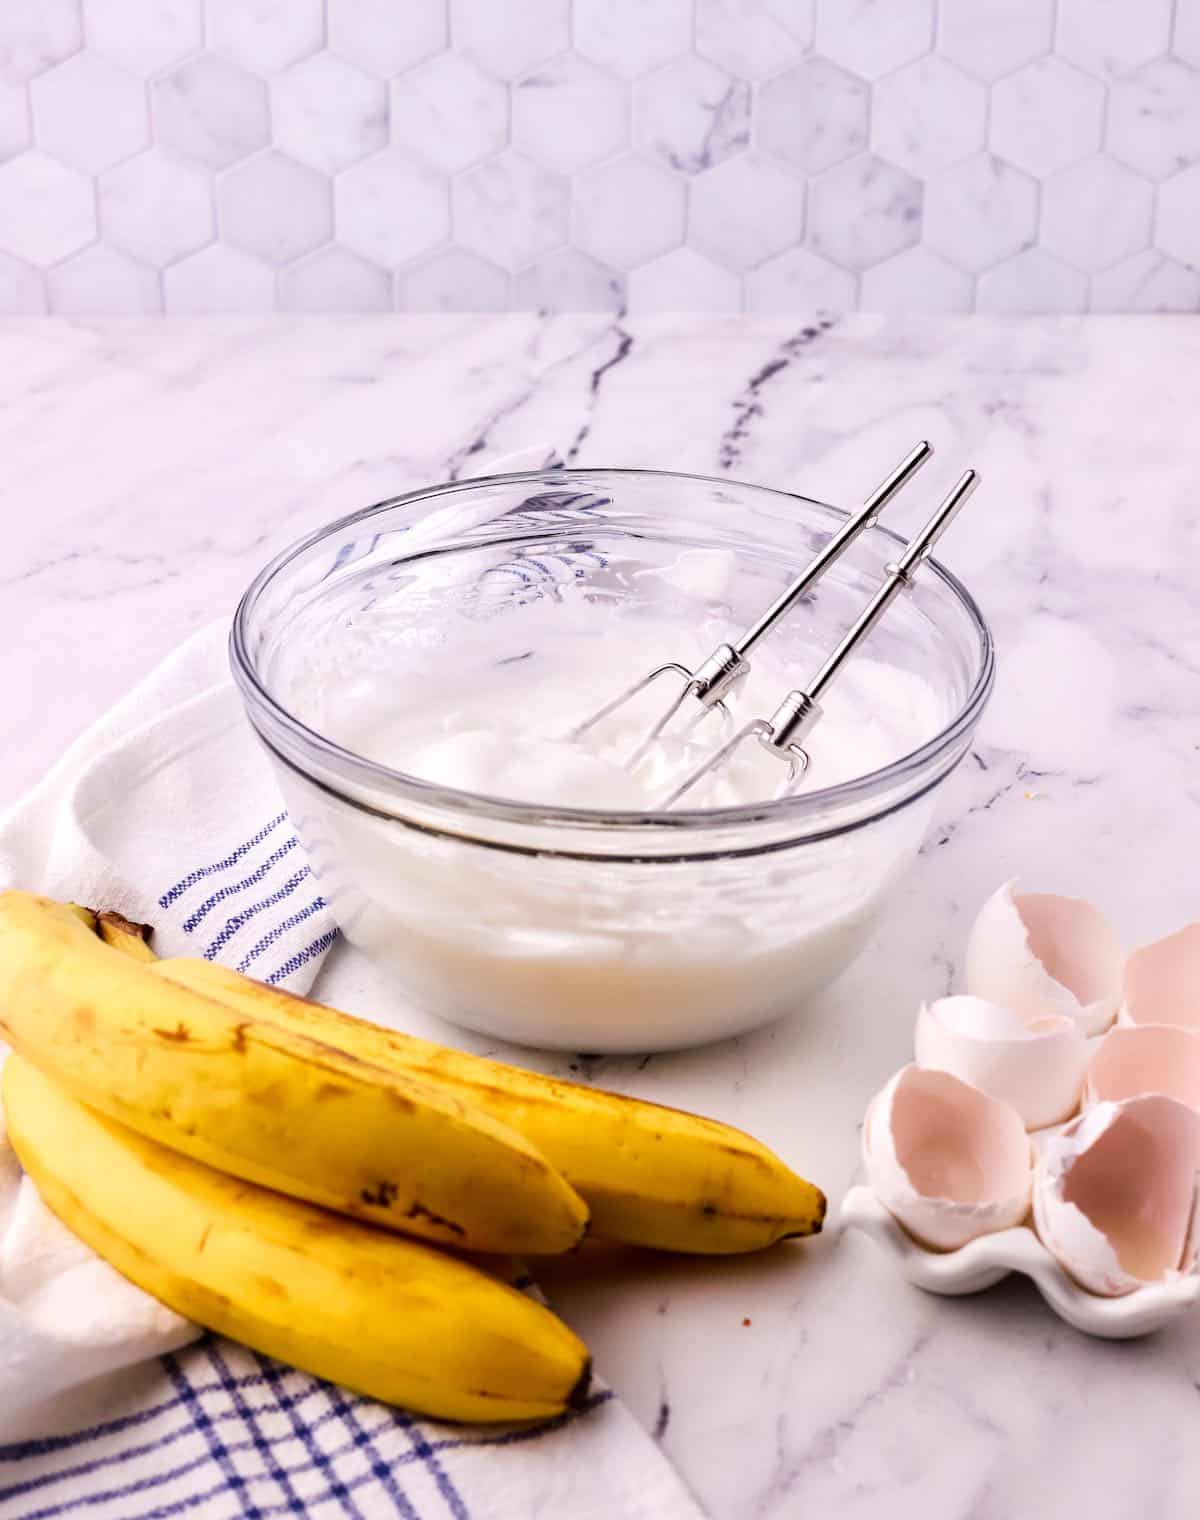 Meringue in a glass bowl with bananas in front.